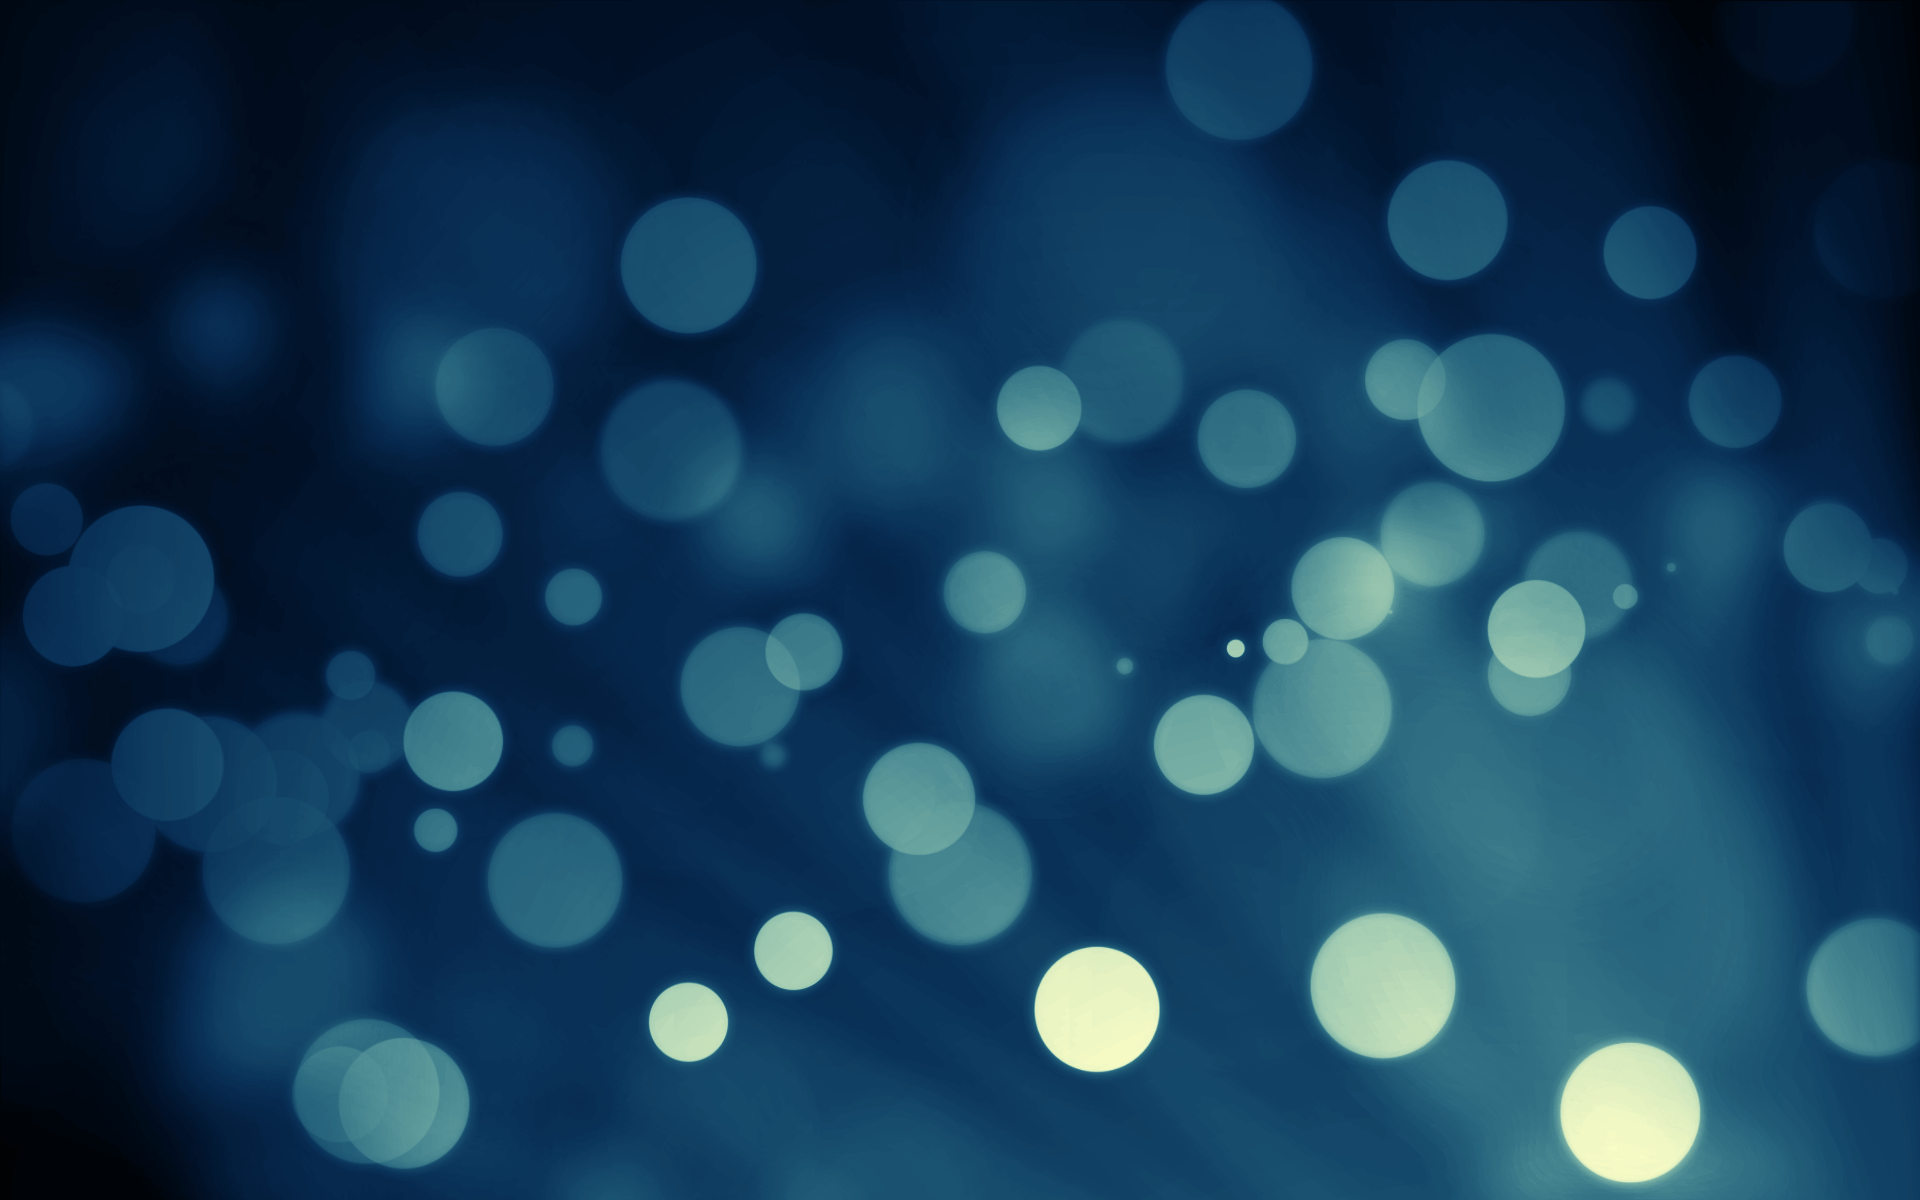 Hd wallpaper png - Abstract Png Wallpapers Full Hd Wallpaper Search Page 2